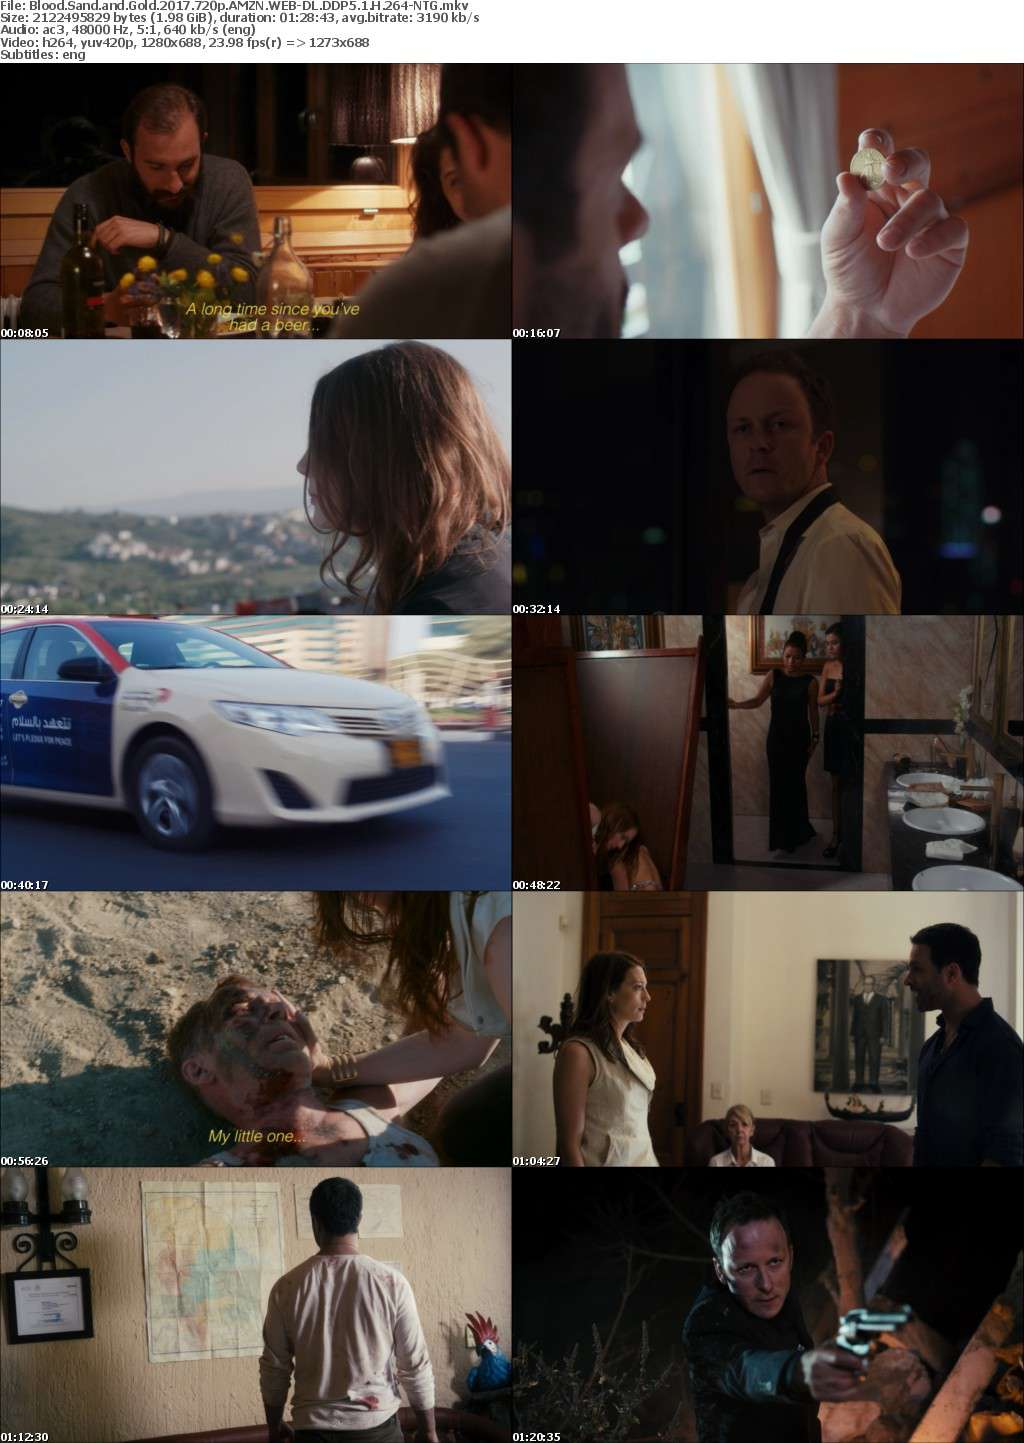 Blood Sand and Gold 2017 720p AMZN WEBRip DDP5 1 x264-NTG